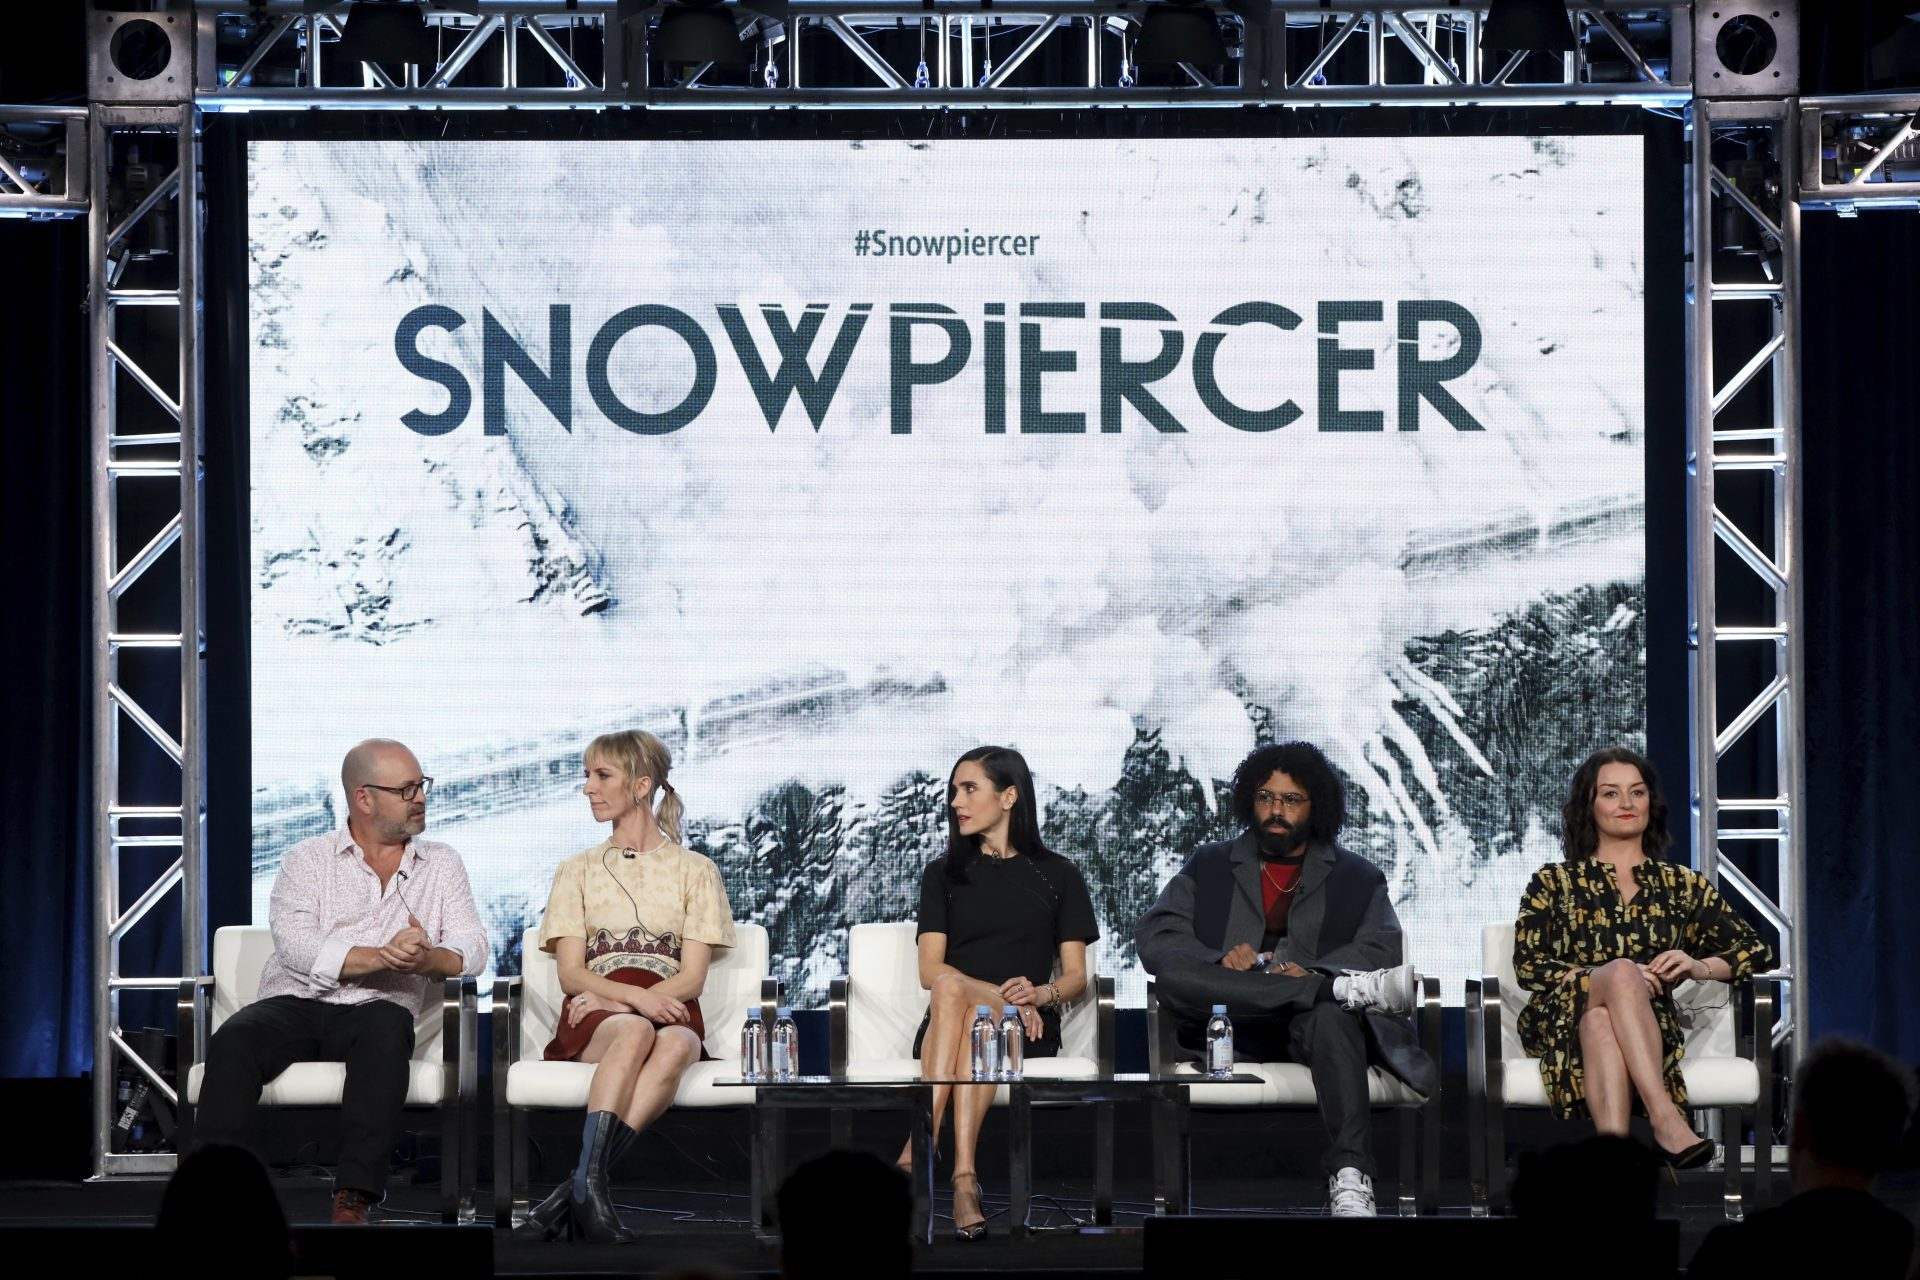 Snowpiercer cast and crew panel discussion